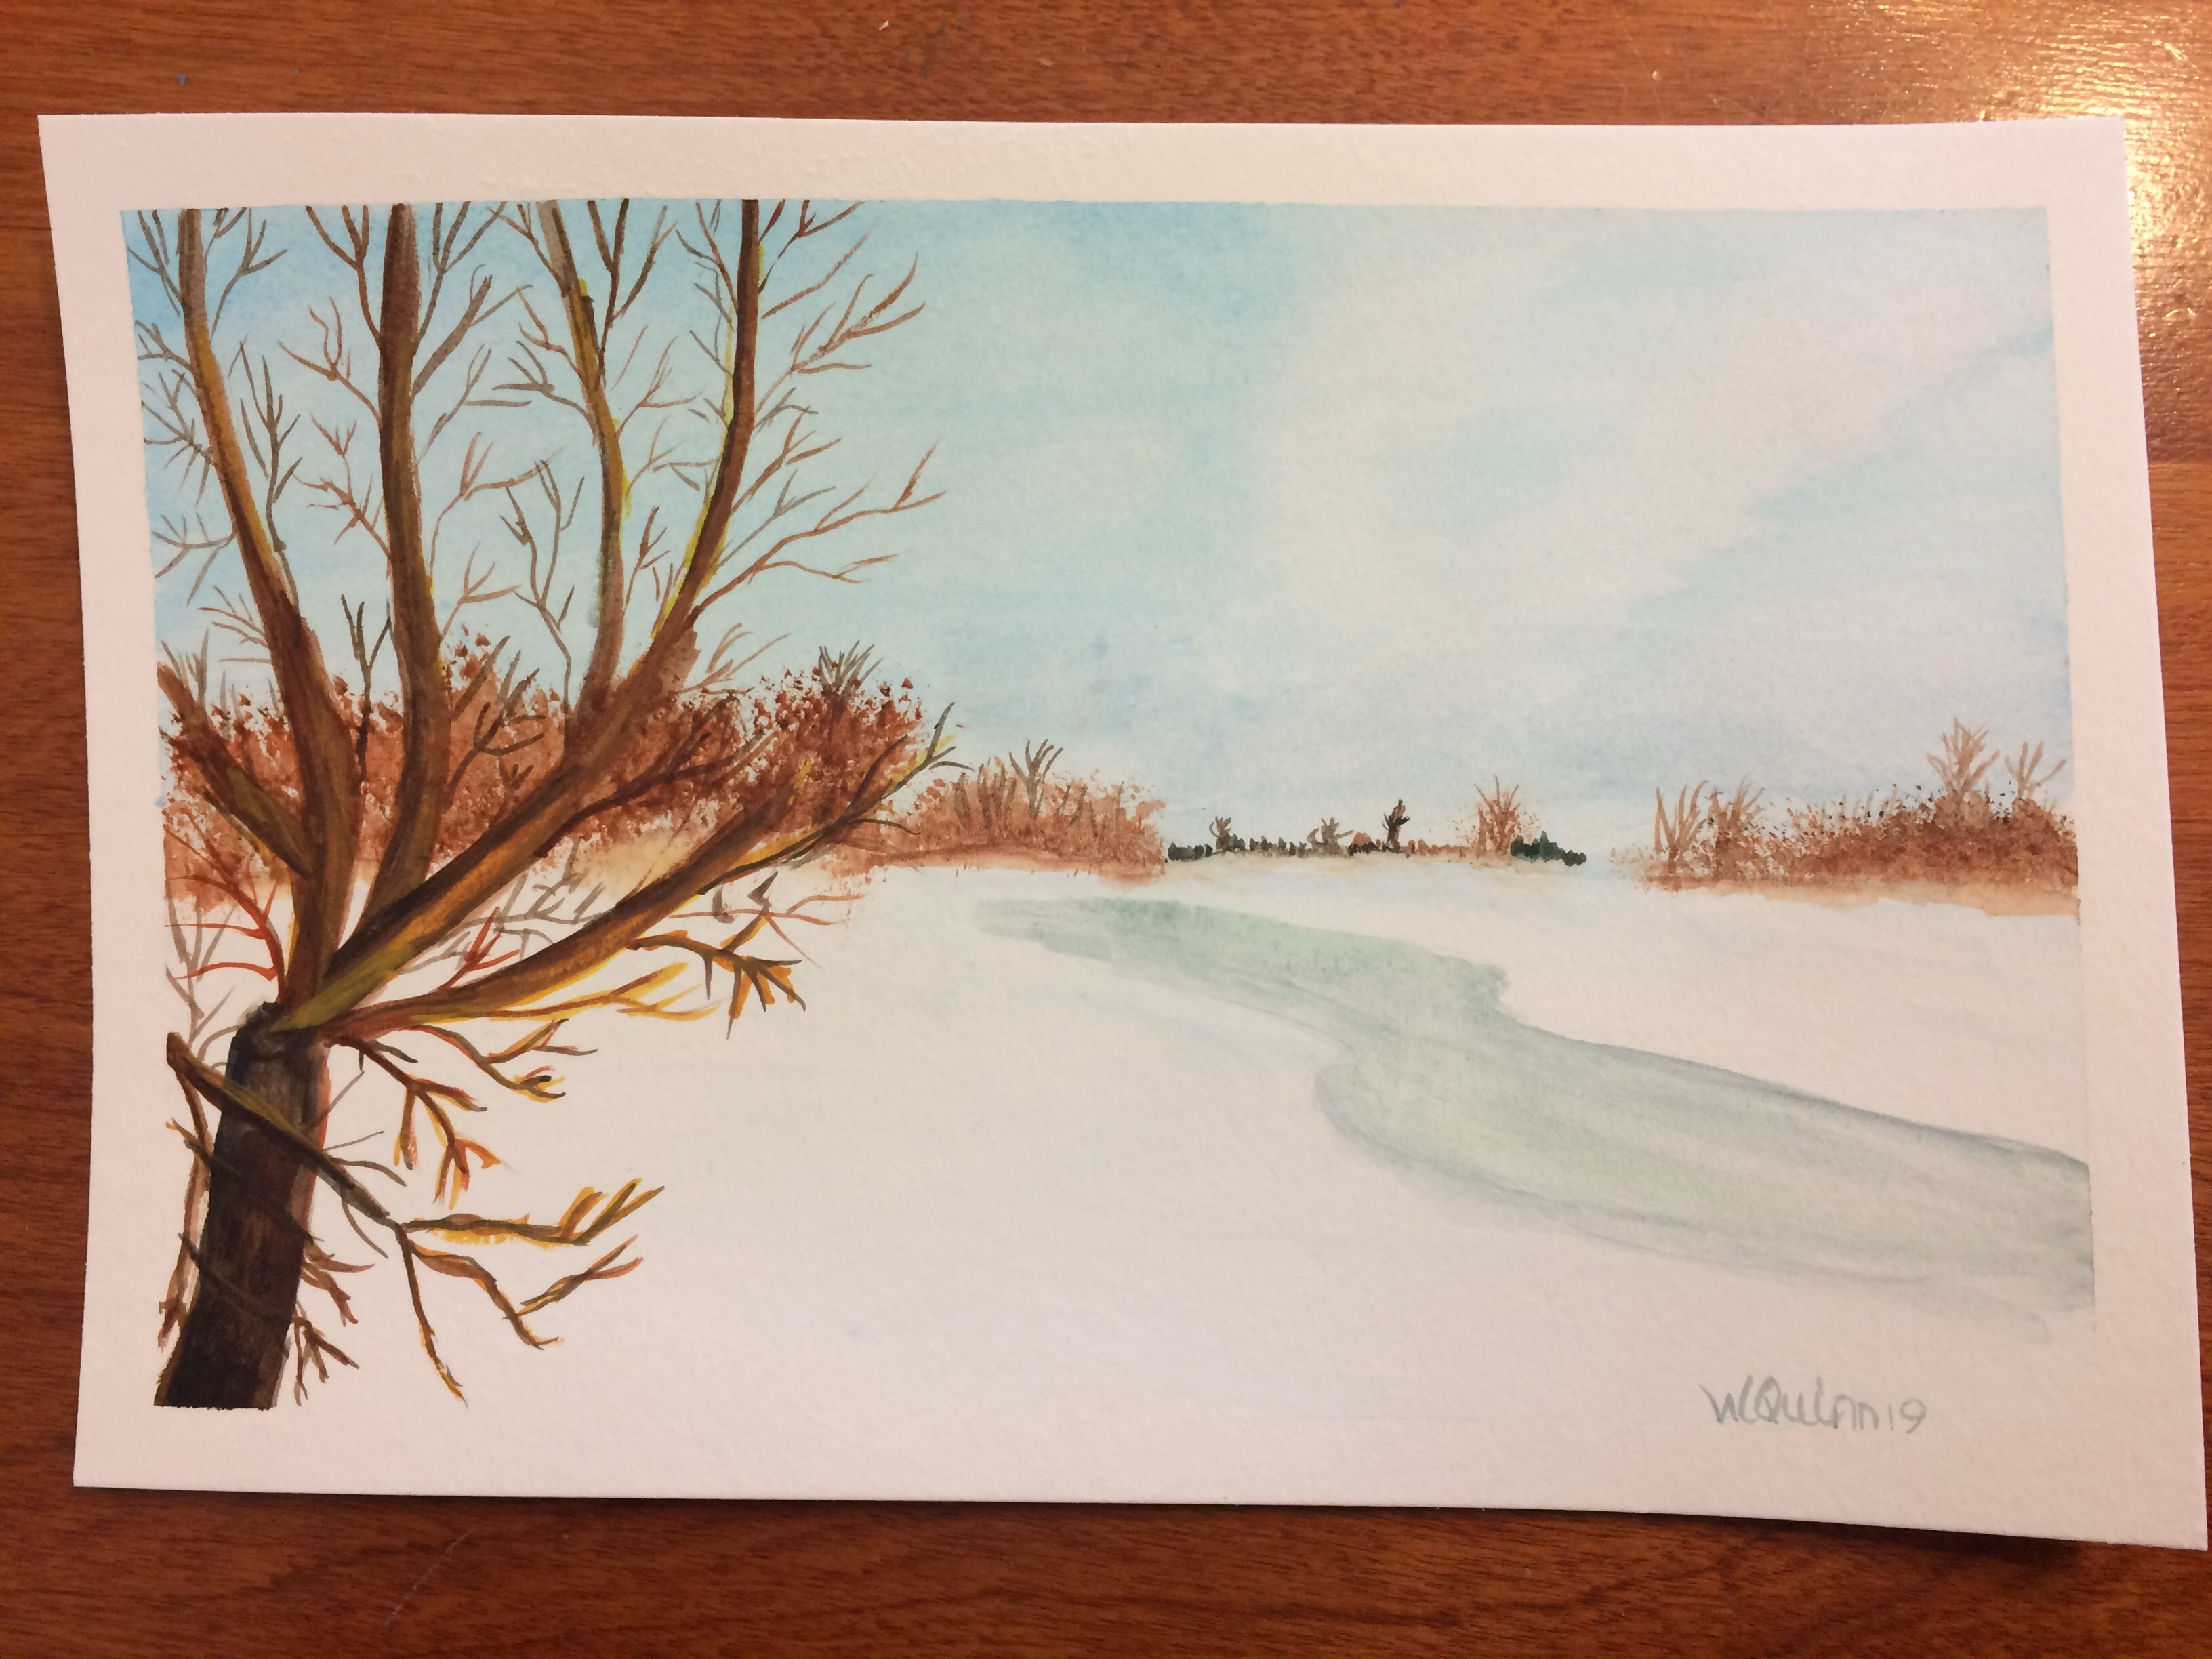 landscape watercolour painting of frozen river with trees around the shoreline.